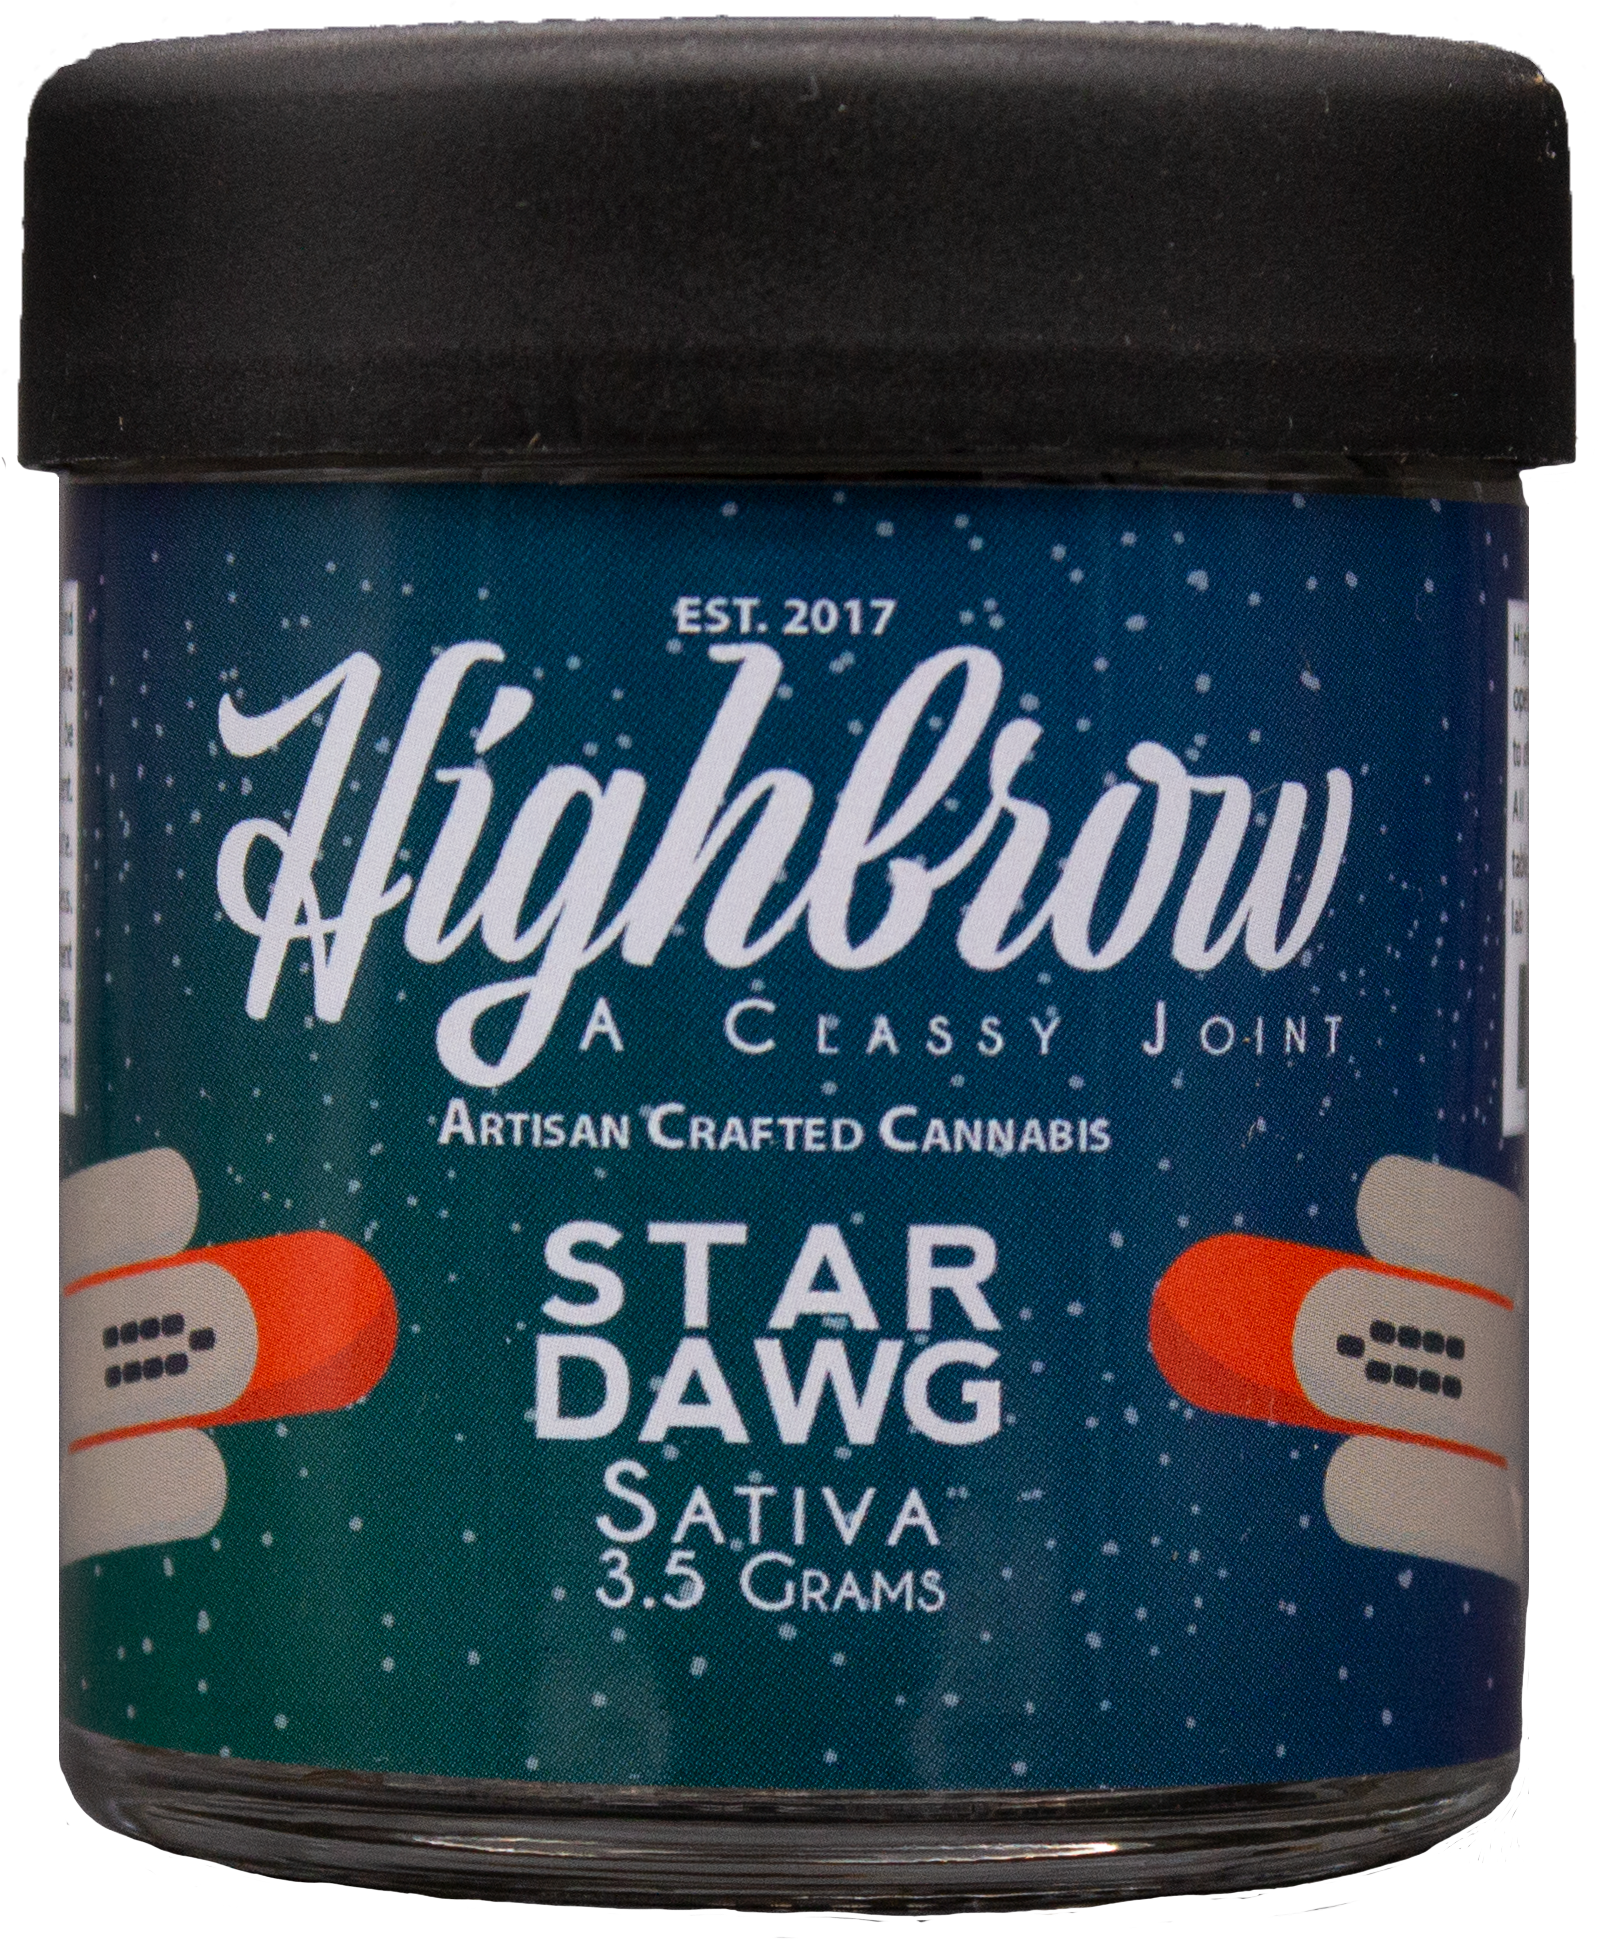 Star Dawg - Launch into space.